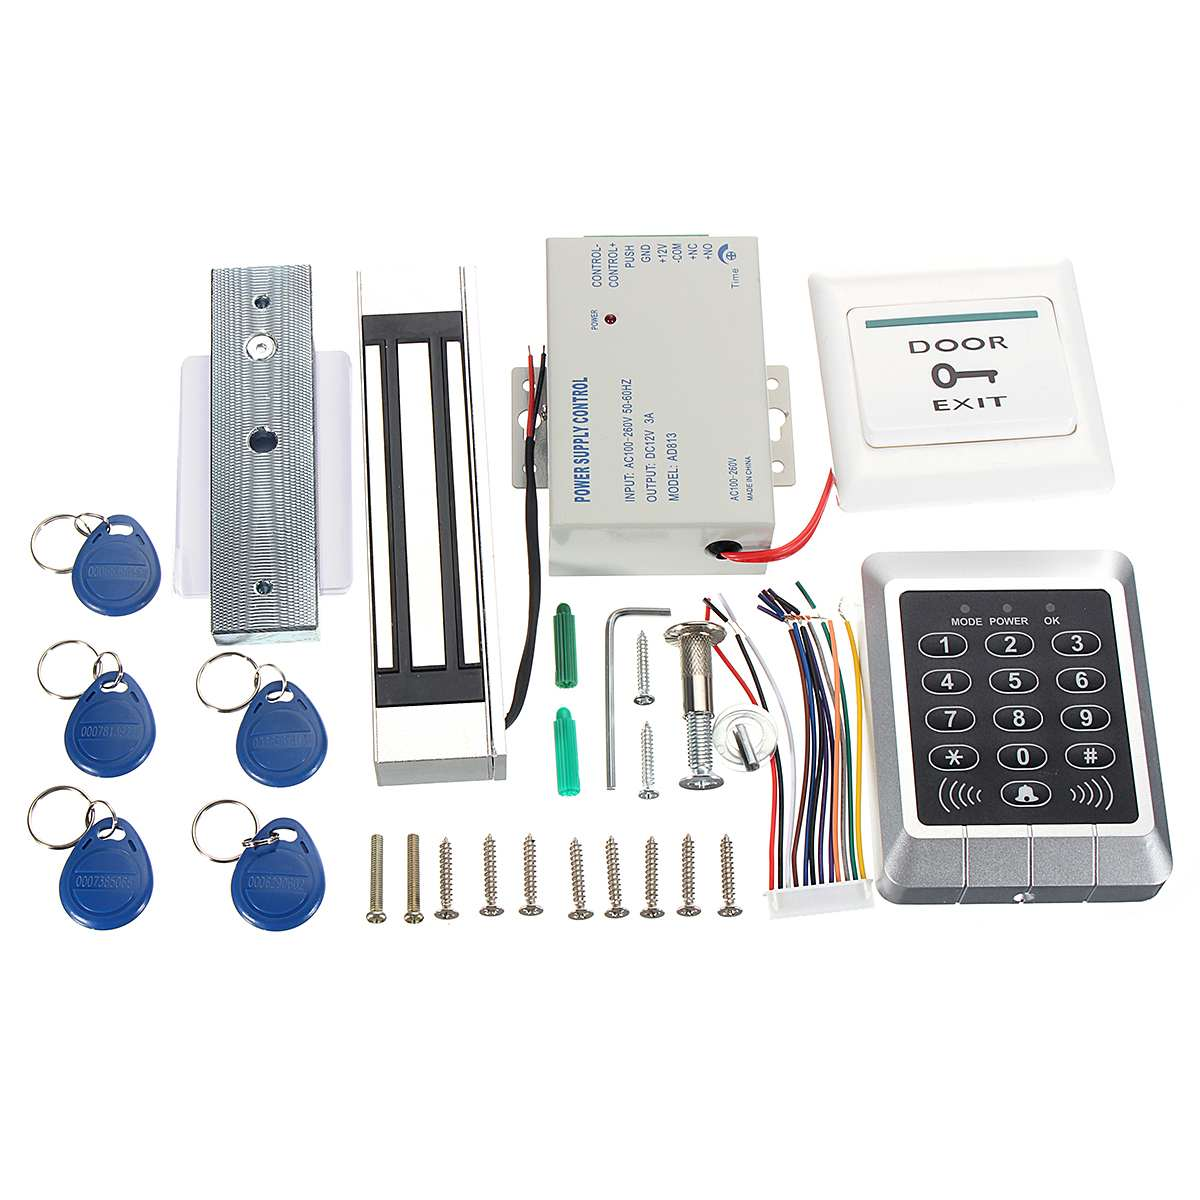 125KHz RFID ID Card Keypad Doorbell Door Lock Security Access Control System Kit Host Controller+Electric Magnetic Lock+Keyfobs125KHz RFID ID Card Keypad Doorbell Door Lock Security Access Control System Kit Host Controller+Electric Magnetic Lock+Keyfobs